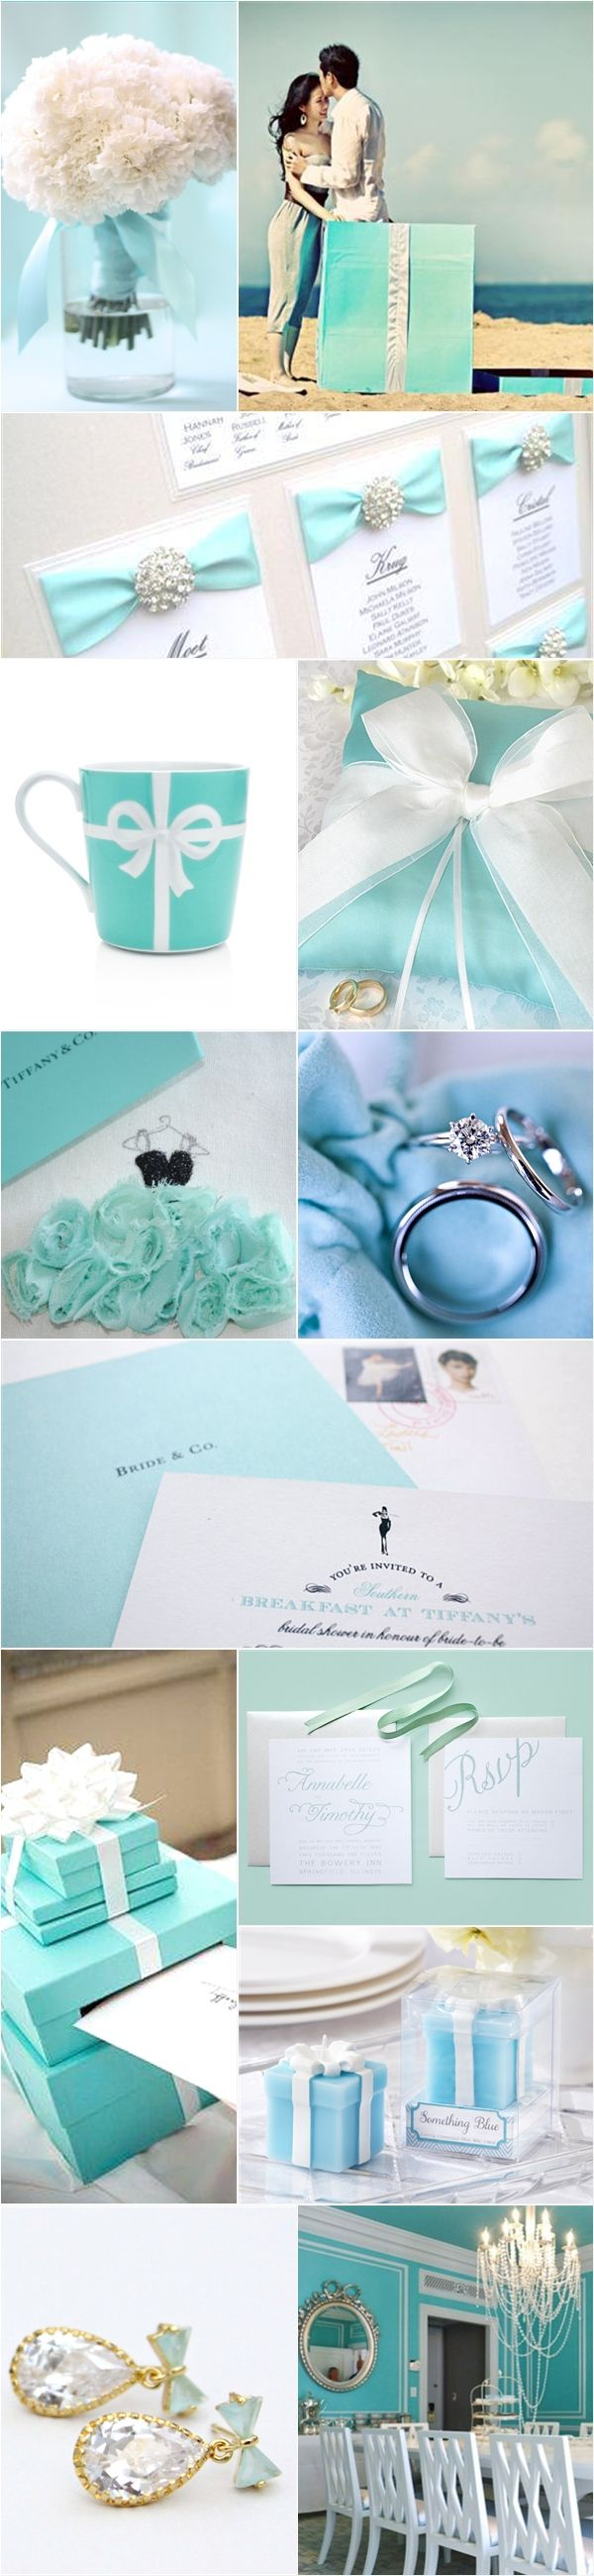 """The """"Tiffany blue"""" has become one of the top dream wedding themes for modern brides.    Nothing says classic elegance and style quite like Tiffany's."""